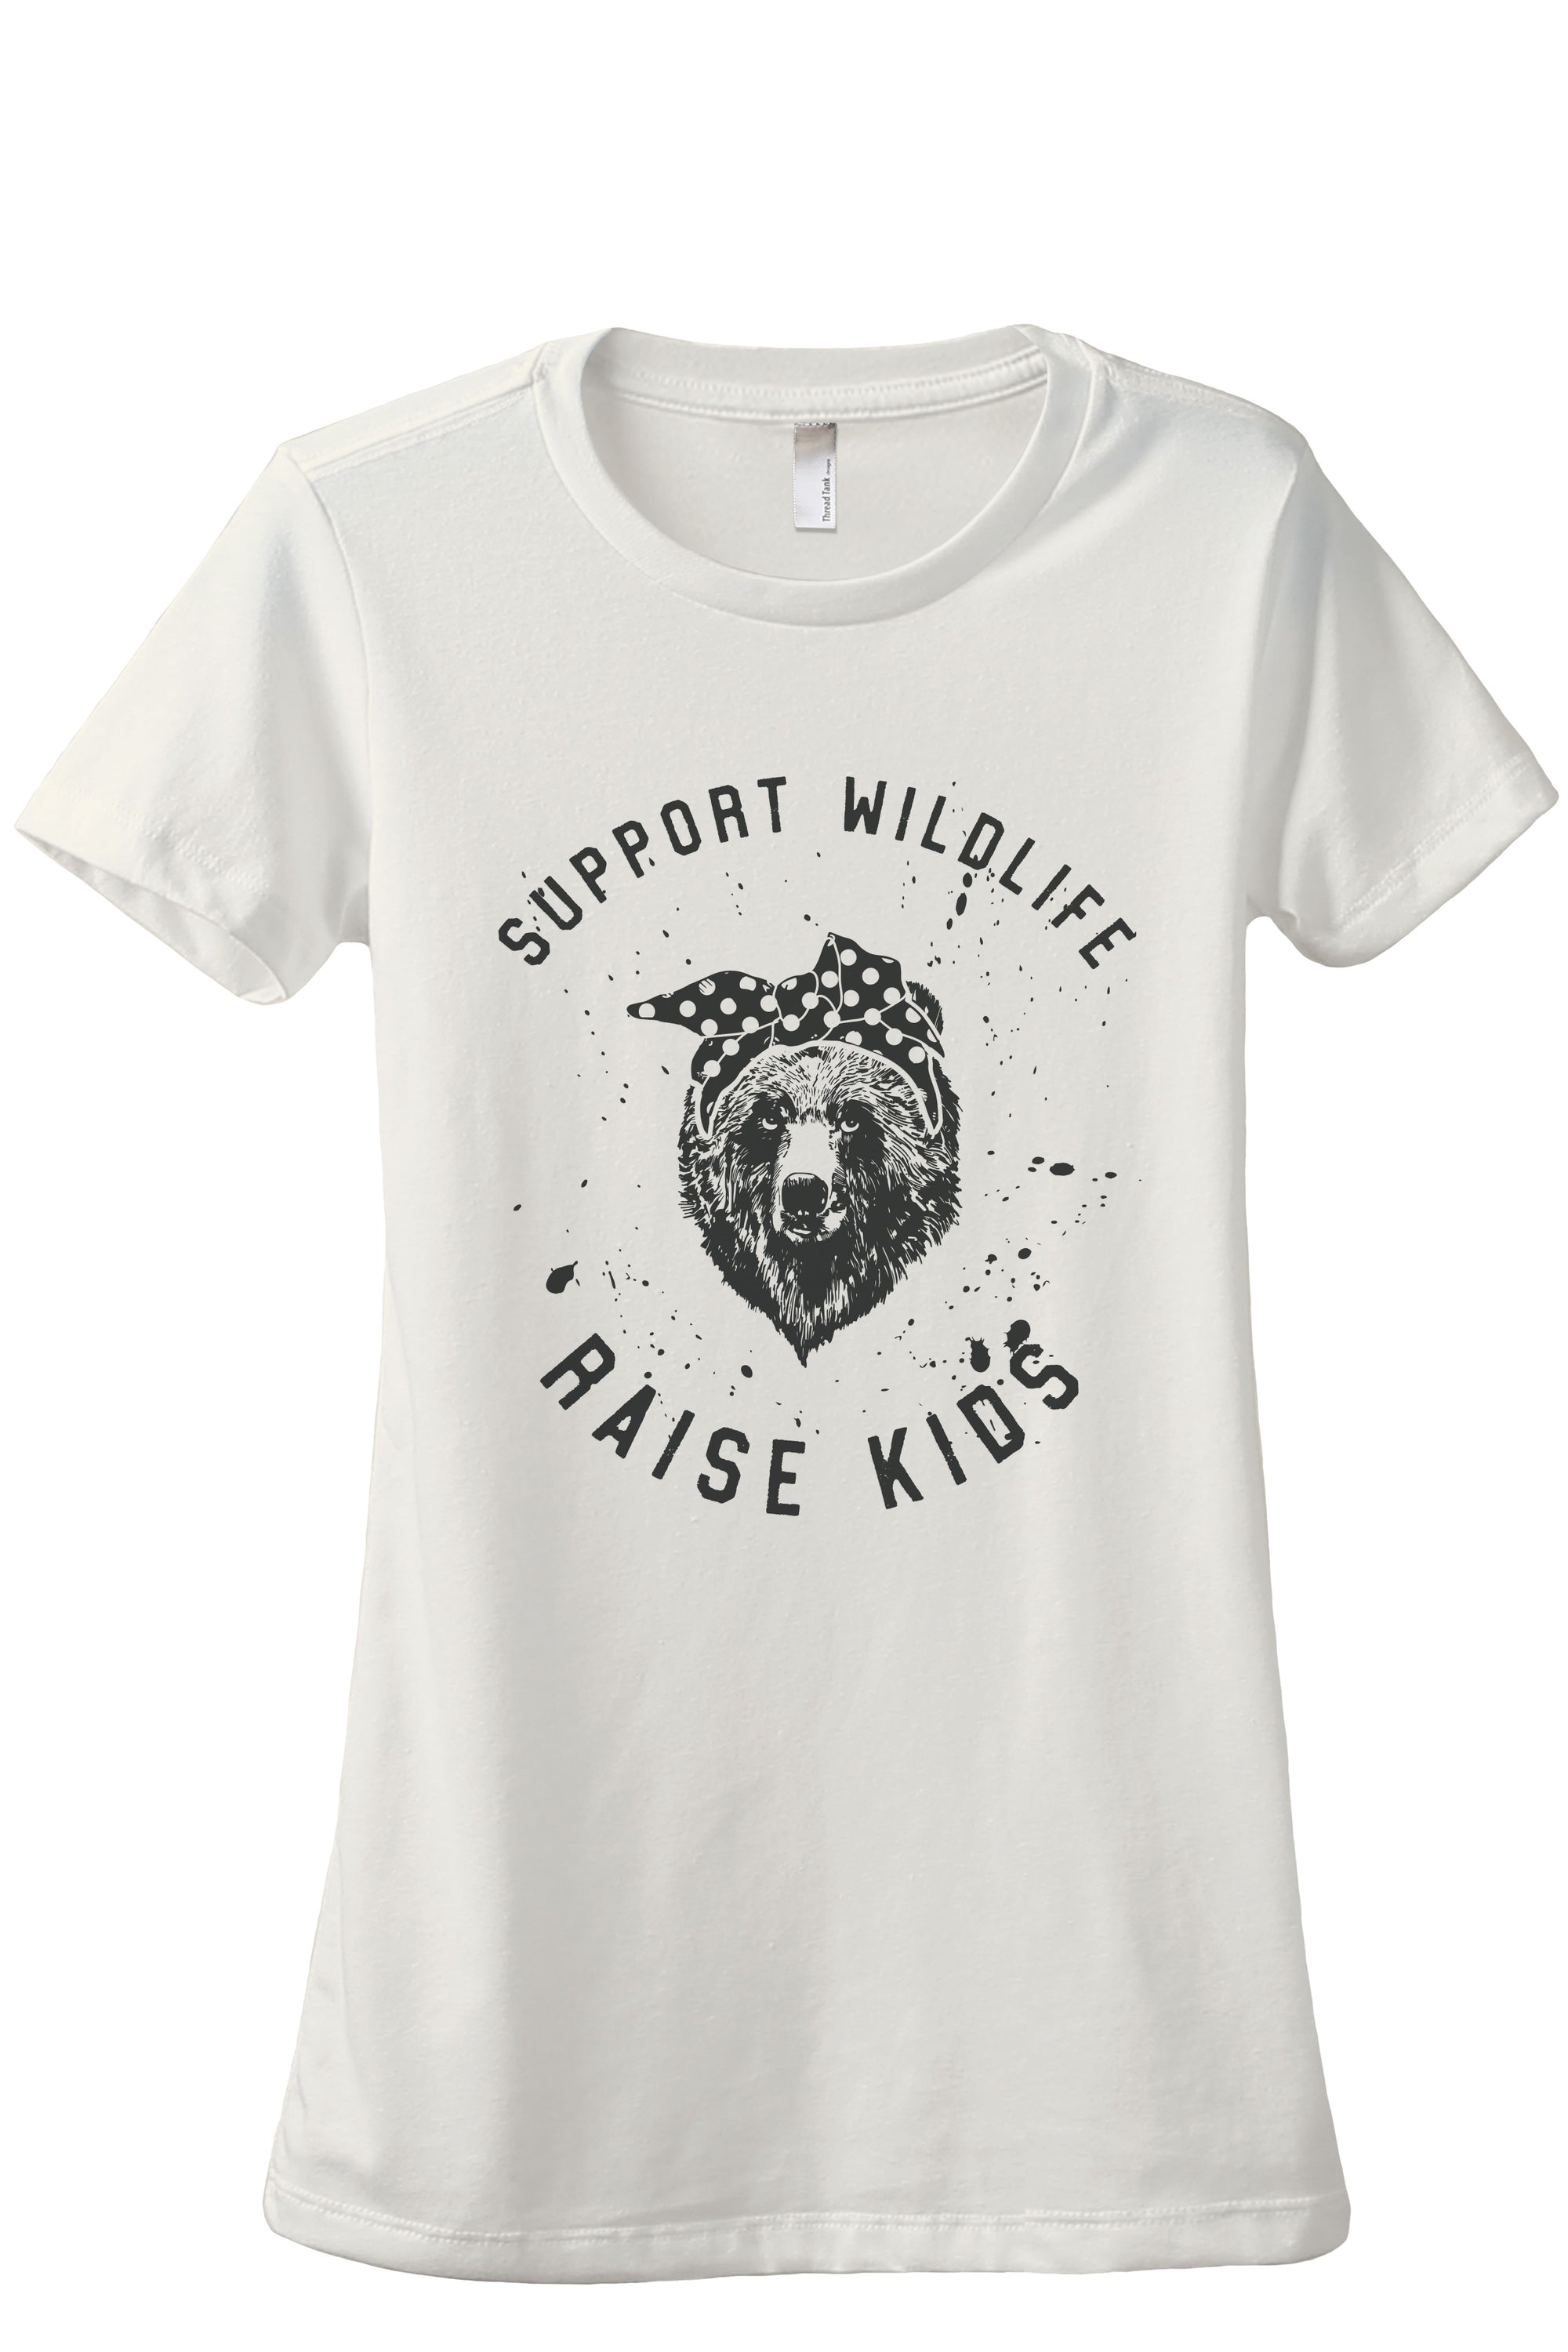 Support Wildlife Raise Kids Women's Relaxed Crewneck T-Shirt Top Tee Charcoal Grey